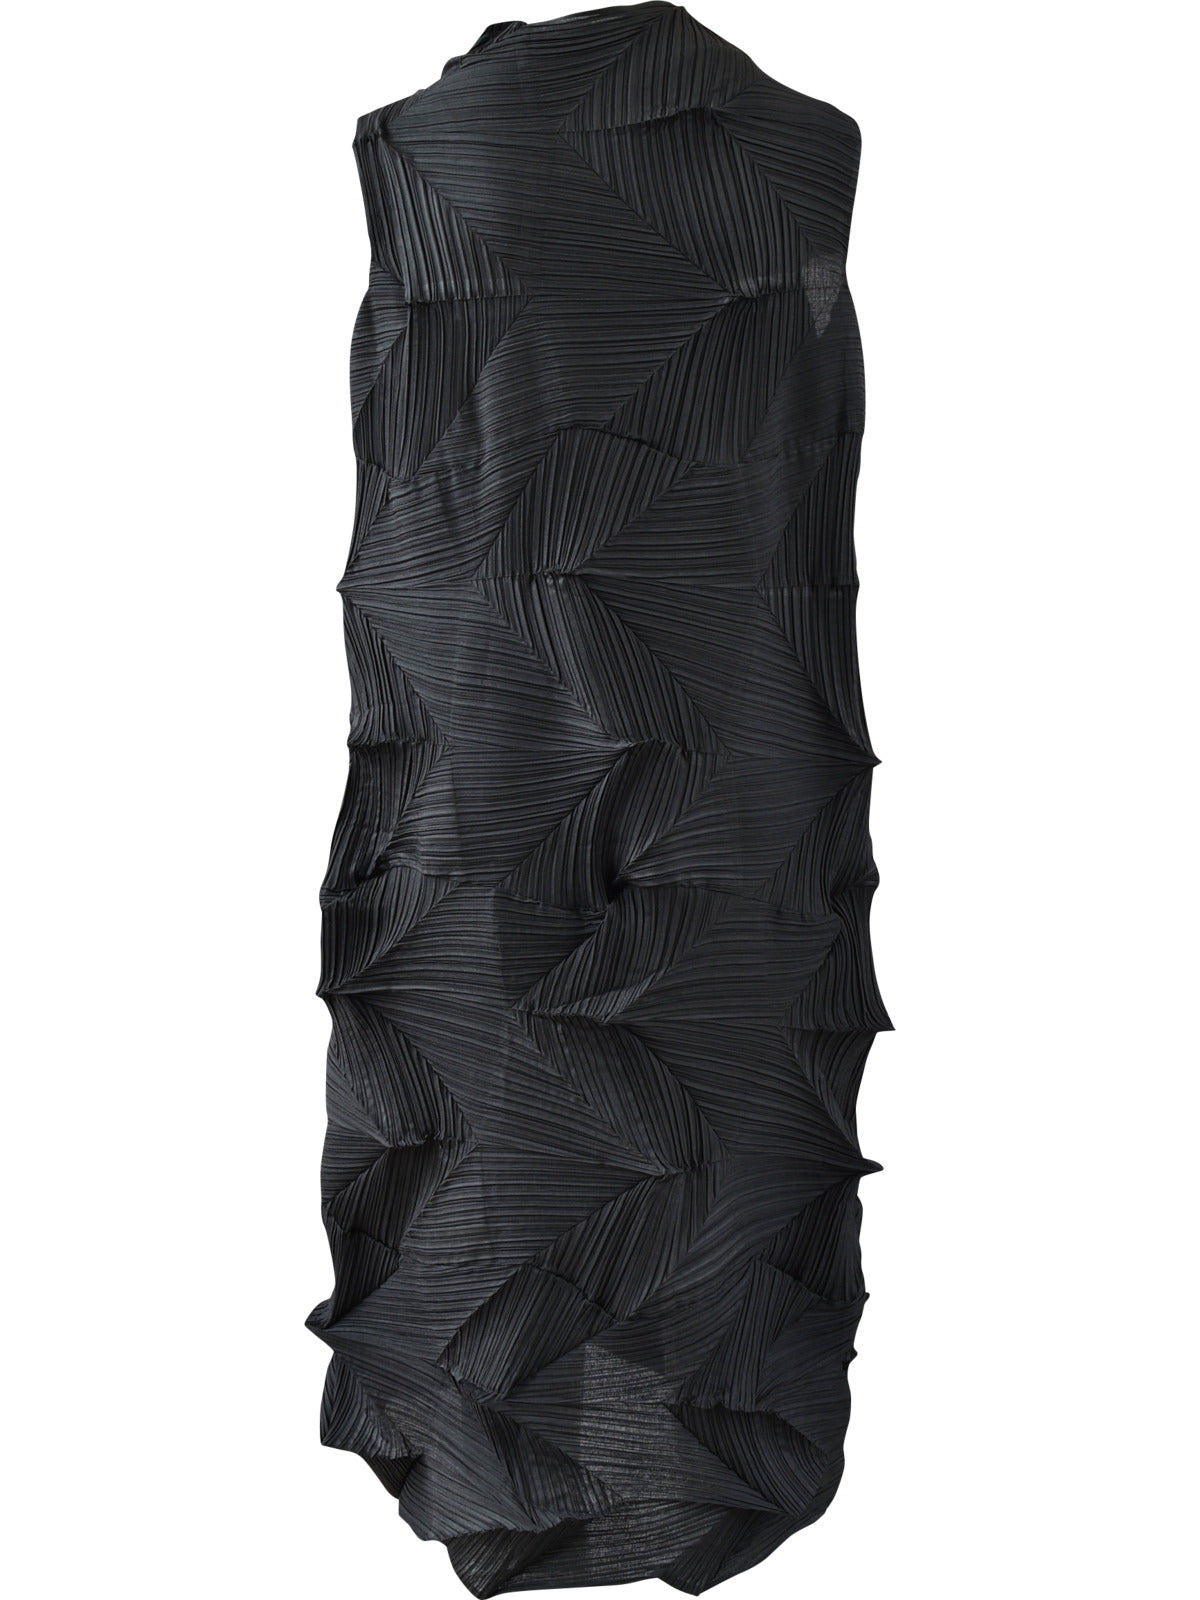 Vanite Couture Zig Zag Pleat Sleeveless Dress, Black